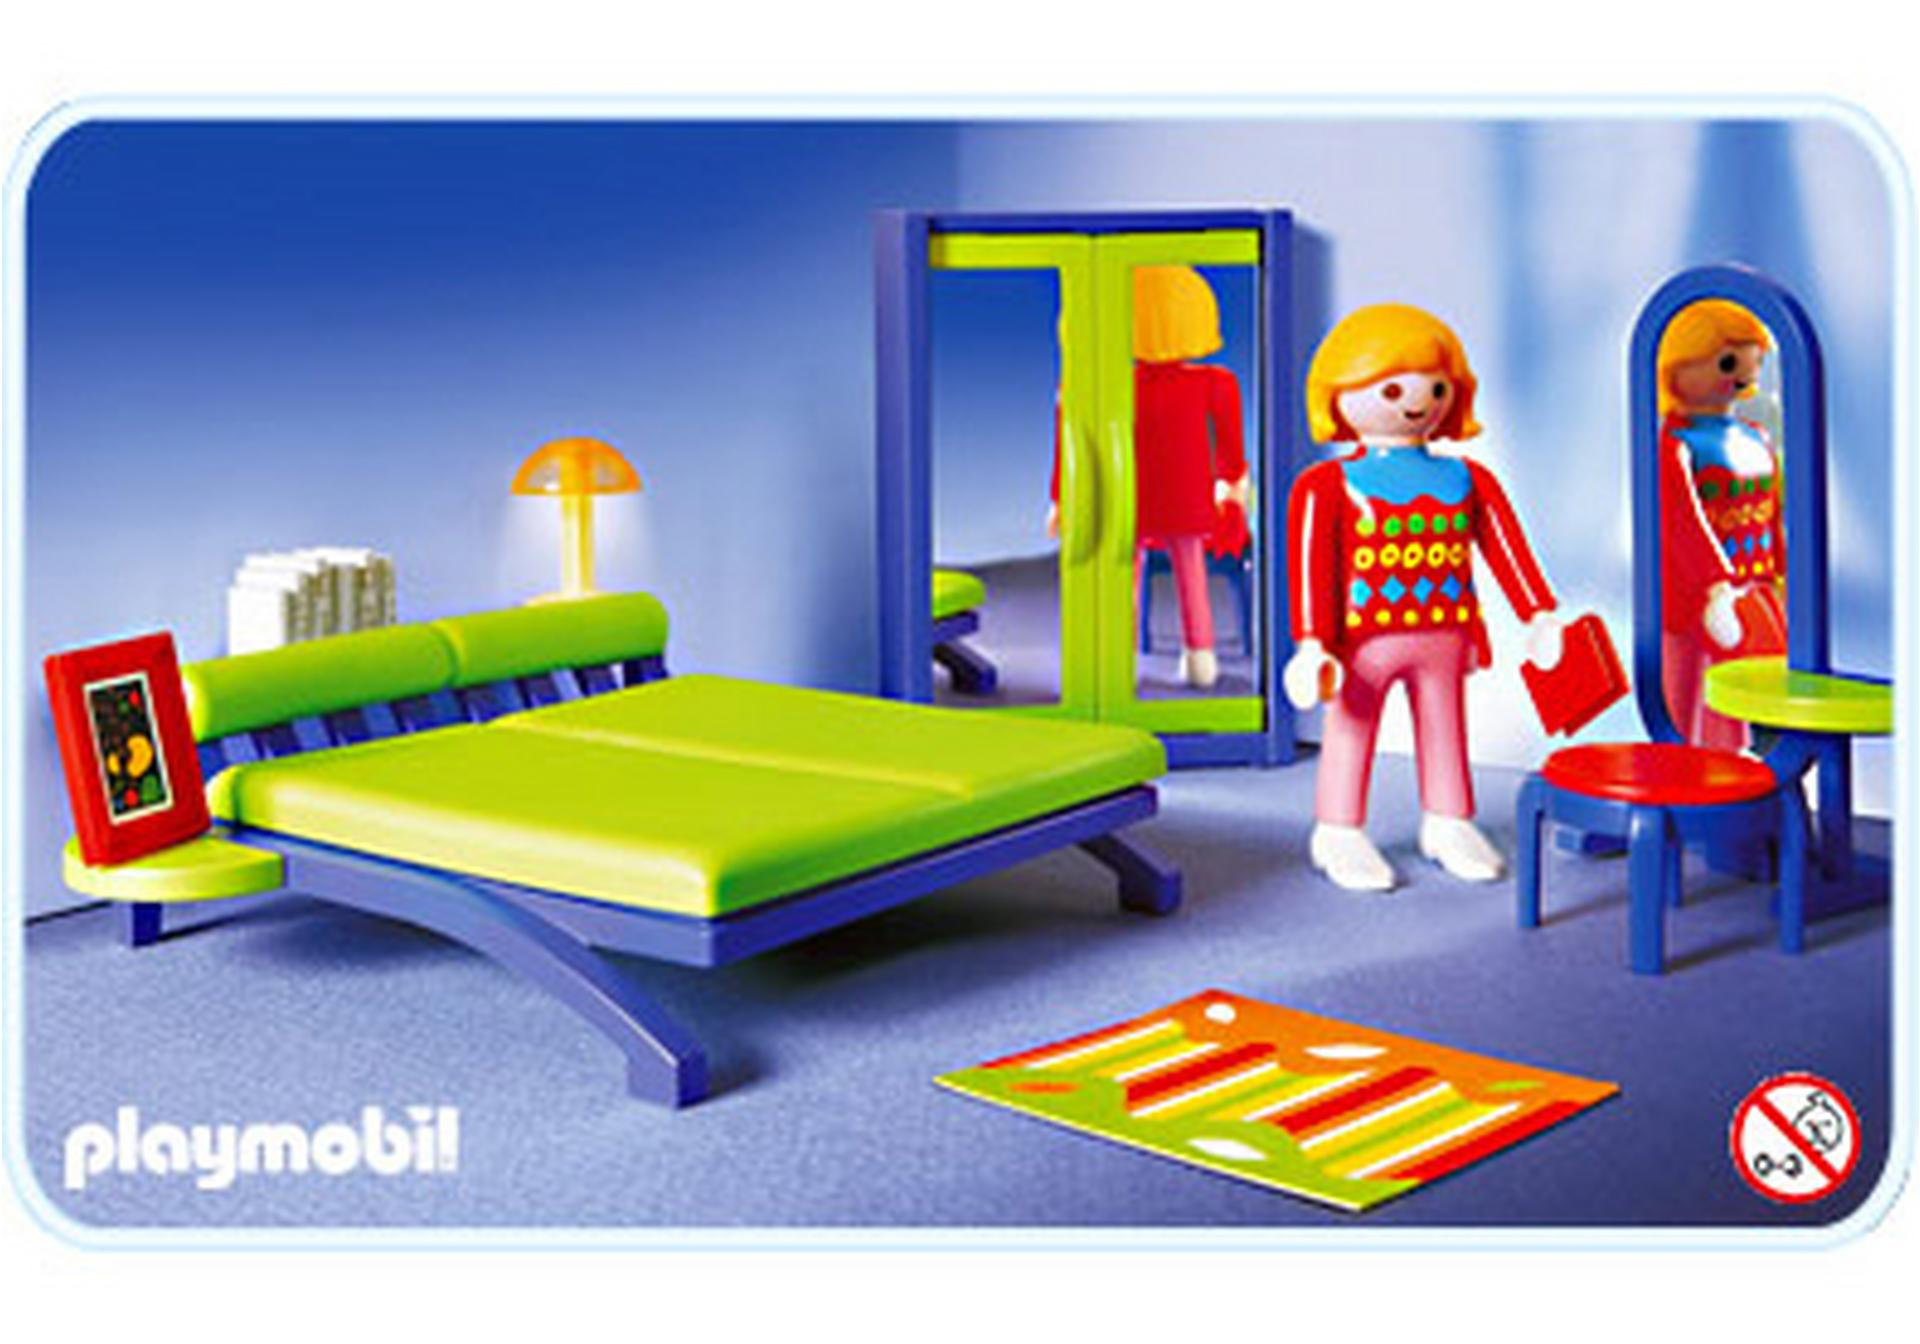 Chambre contemporaine 3967 a playmobil france - Chambre parents playmobil ...